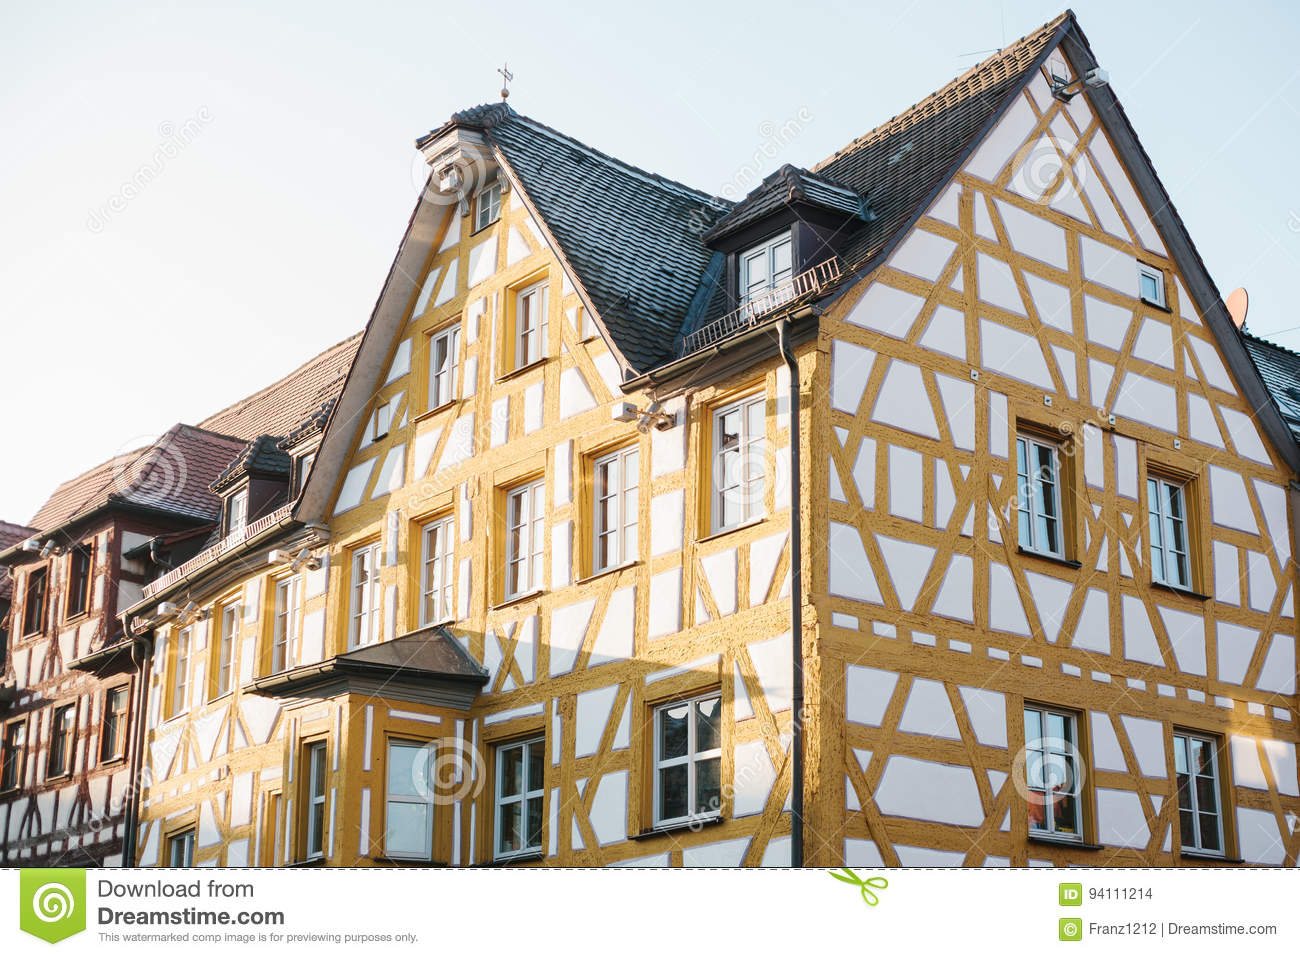 Maison traditionnelle dans le style allemand en bavi re l for Dans en allemand